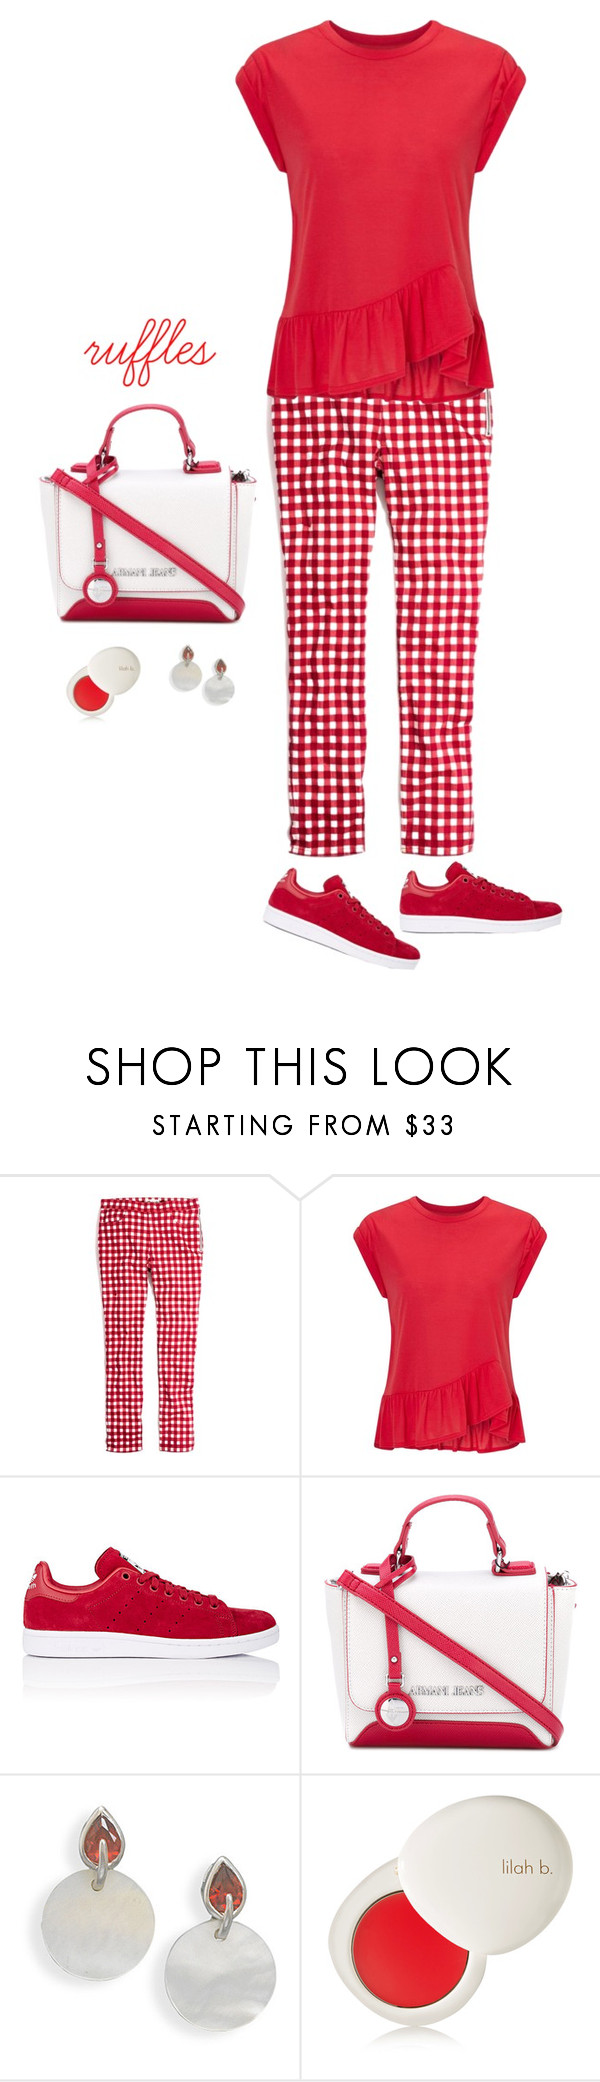 """""""Red Ruffles"""" by musicfriend1 ❤ liked on Polyvore featuring Madewell, Miss Selfridge, adidas, Armani Jeans, BillyTheTree and lilah b."""